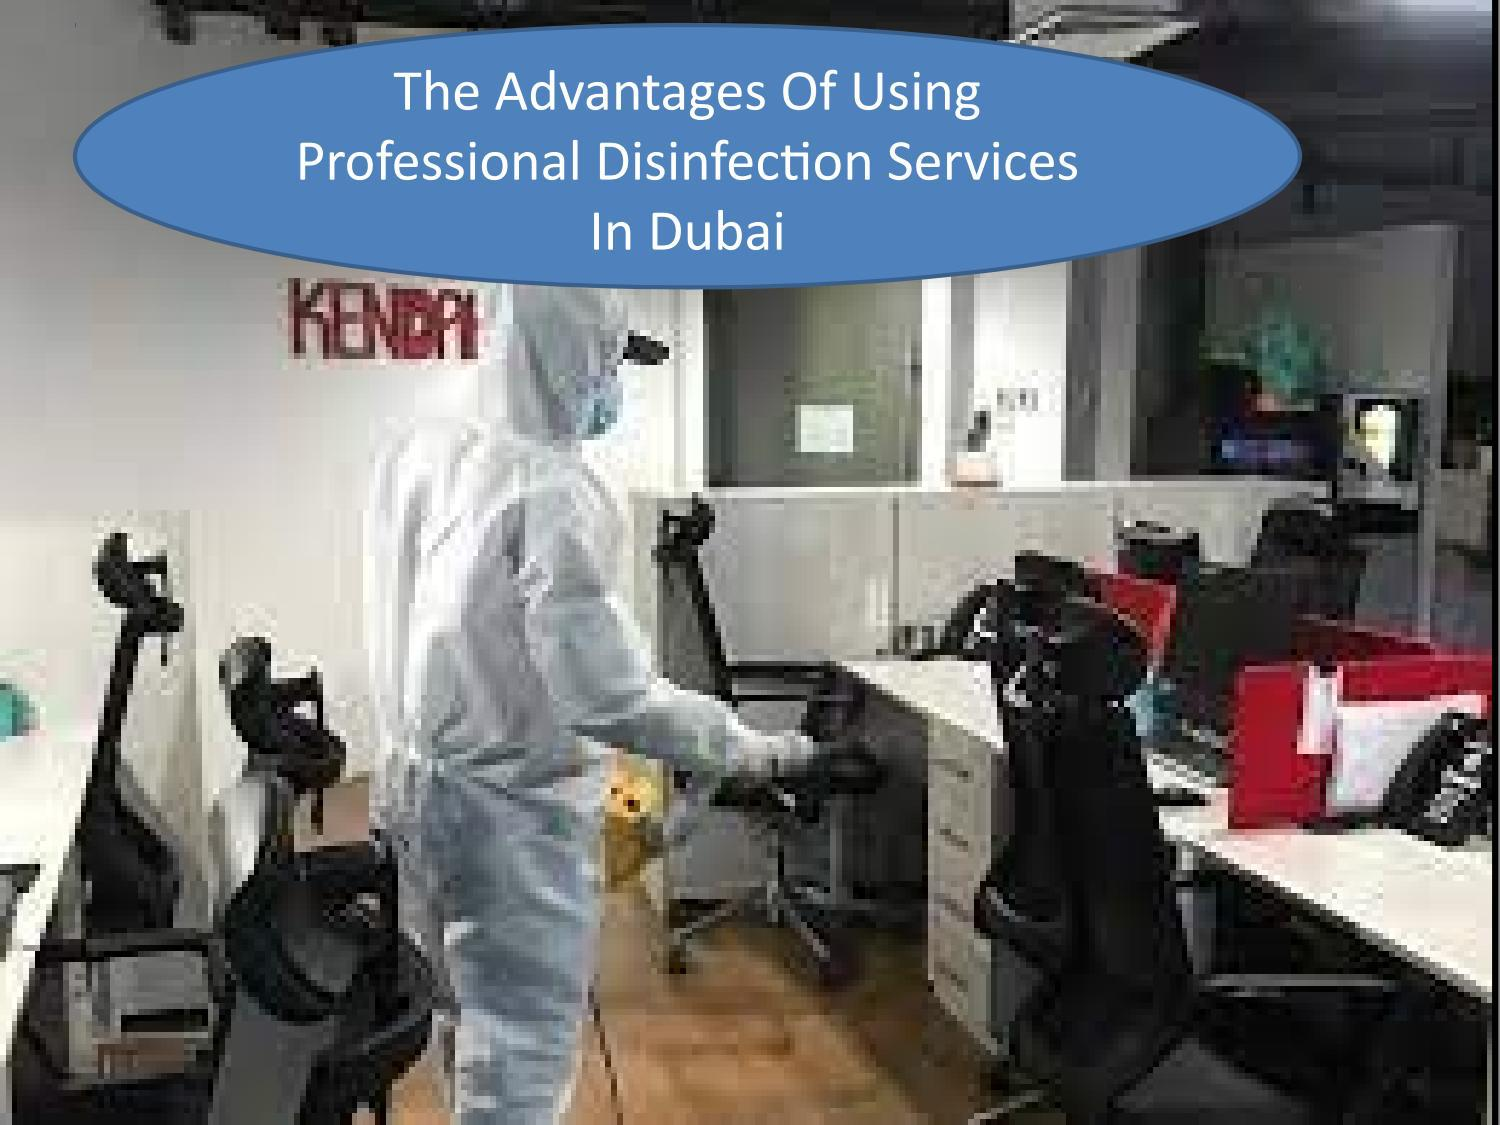 The Advantages Of Using Professional Disinfection Services In Dubai